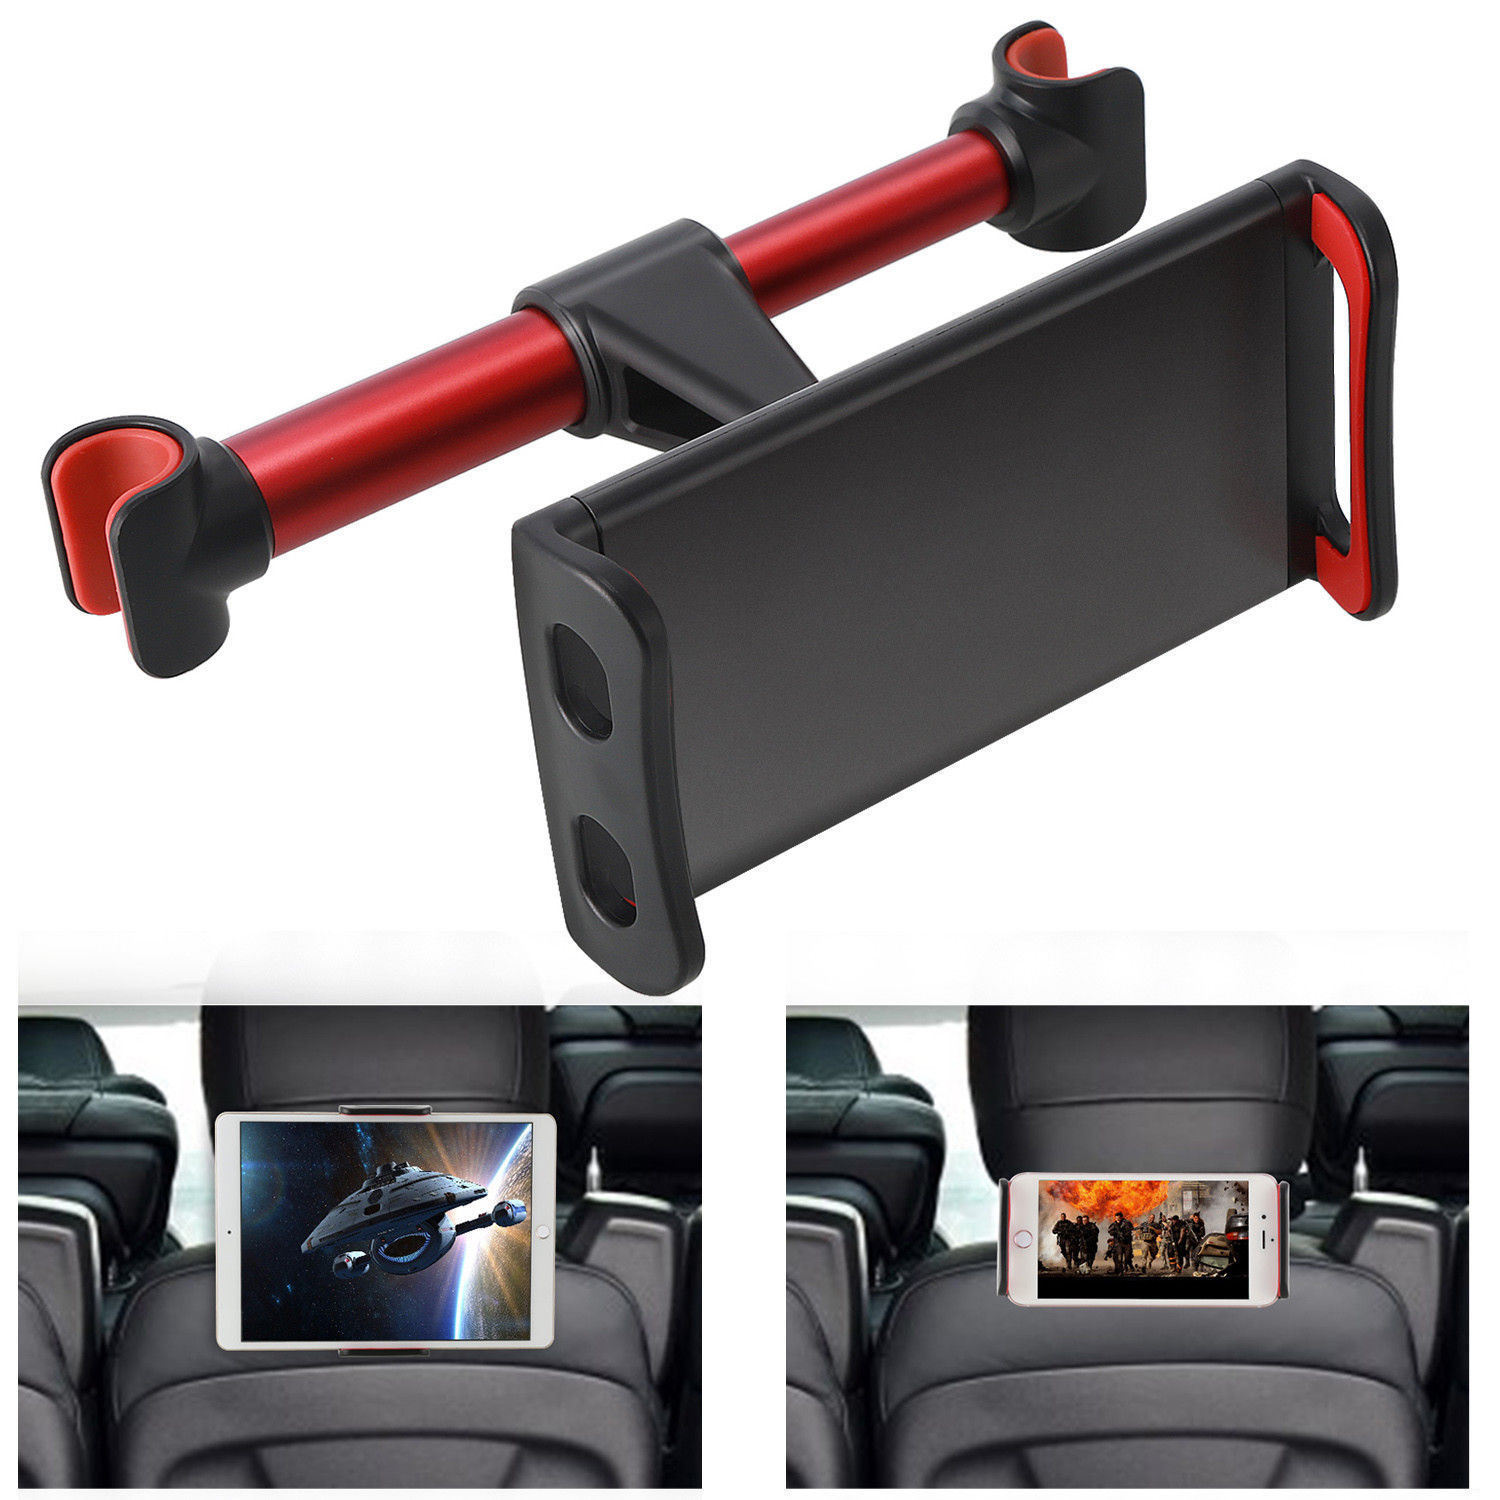 Adjustable Car Seat Headrest Mount Holder for iPad Mini Tablet GPS Phone